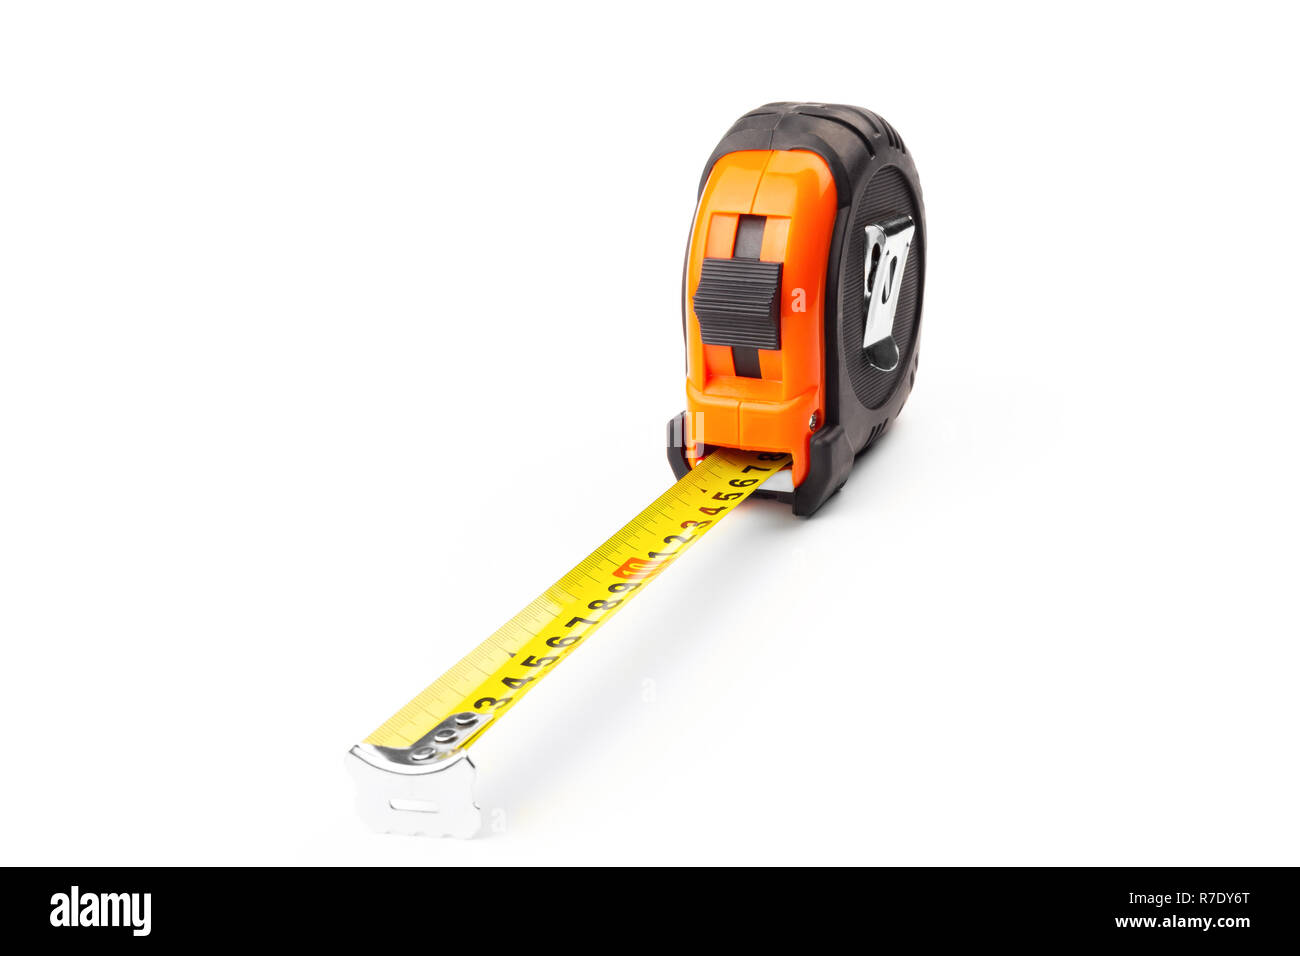 Black and orange tape measure with a yellow tape on a white background - Stock Image